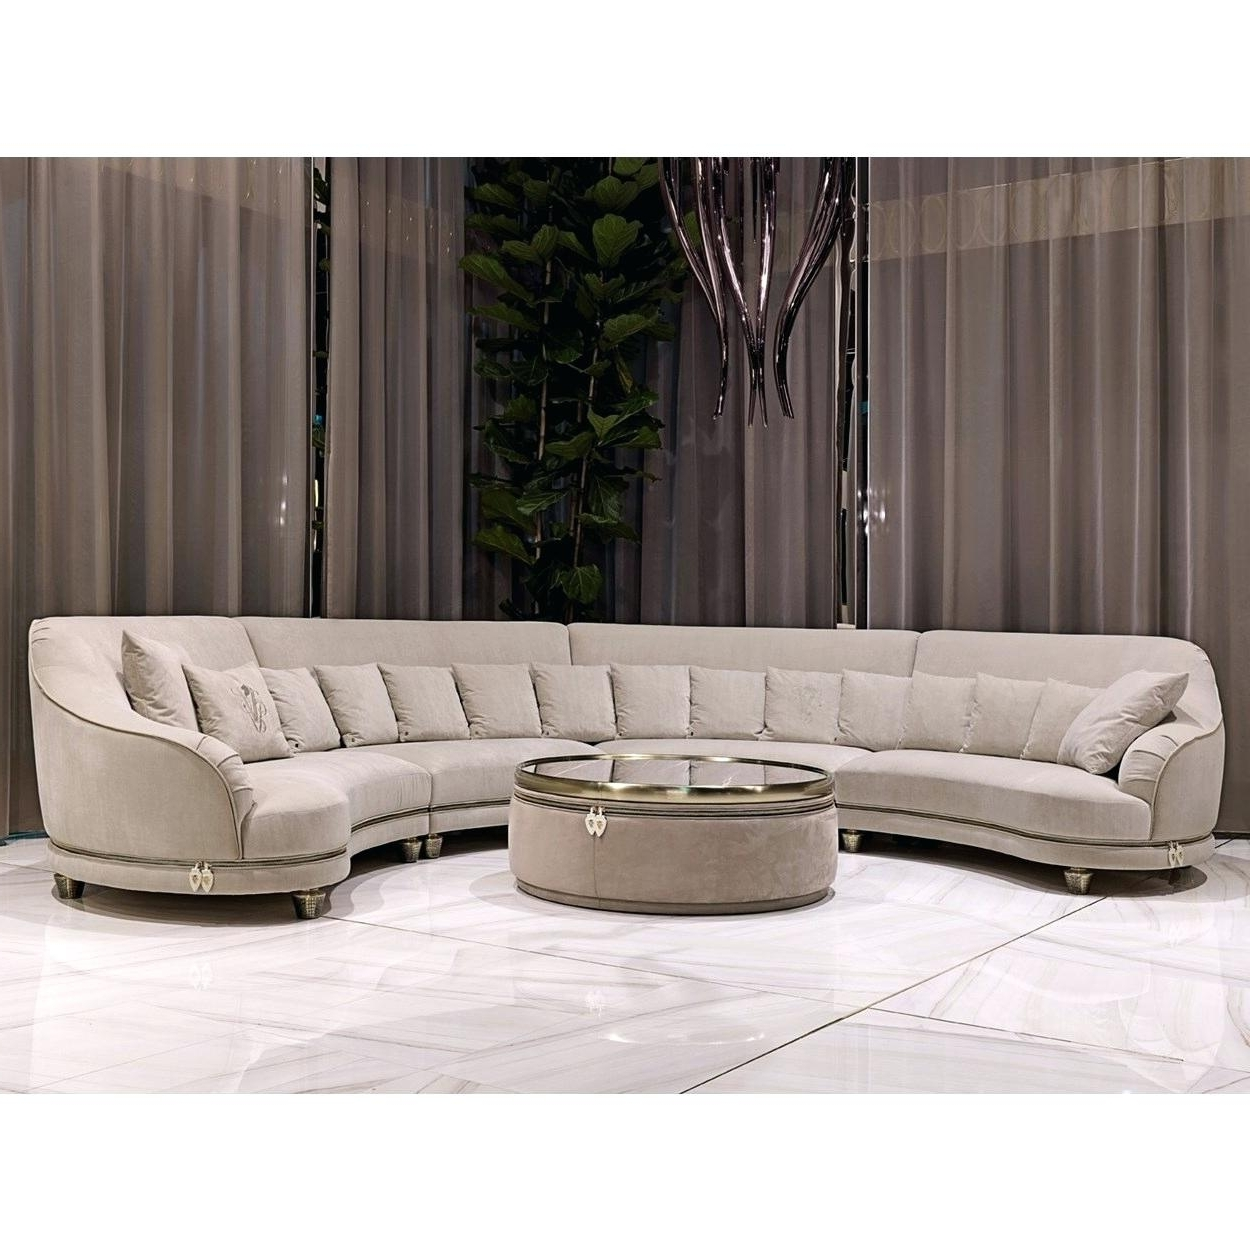 Well Liked Curve Sofa Curved Sectional Bed Recliner Couches – Lilwayne With Regard To Curved Recliner Sofas (View 14 of 15)